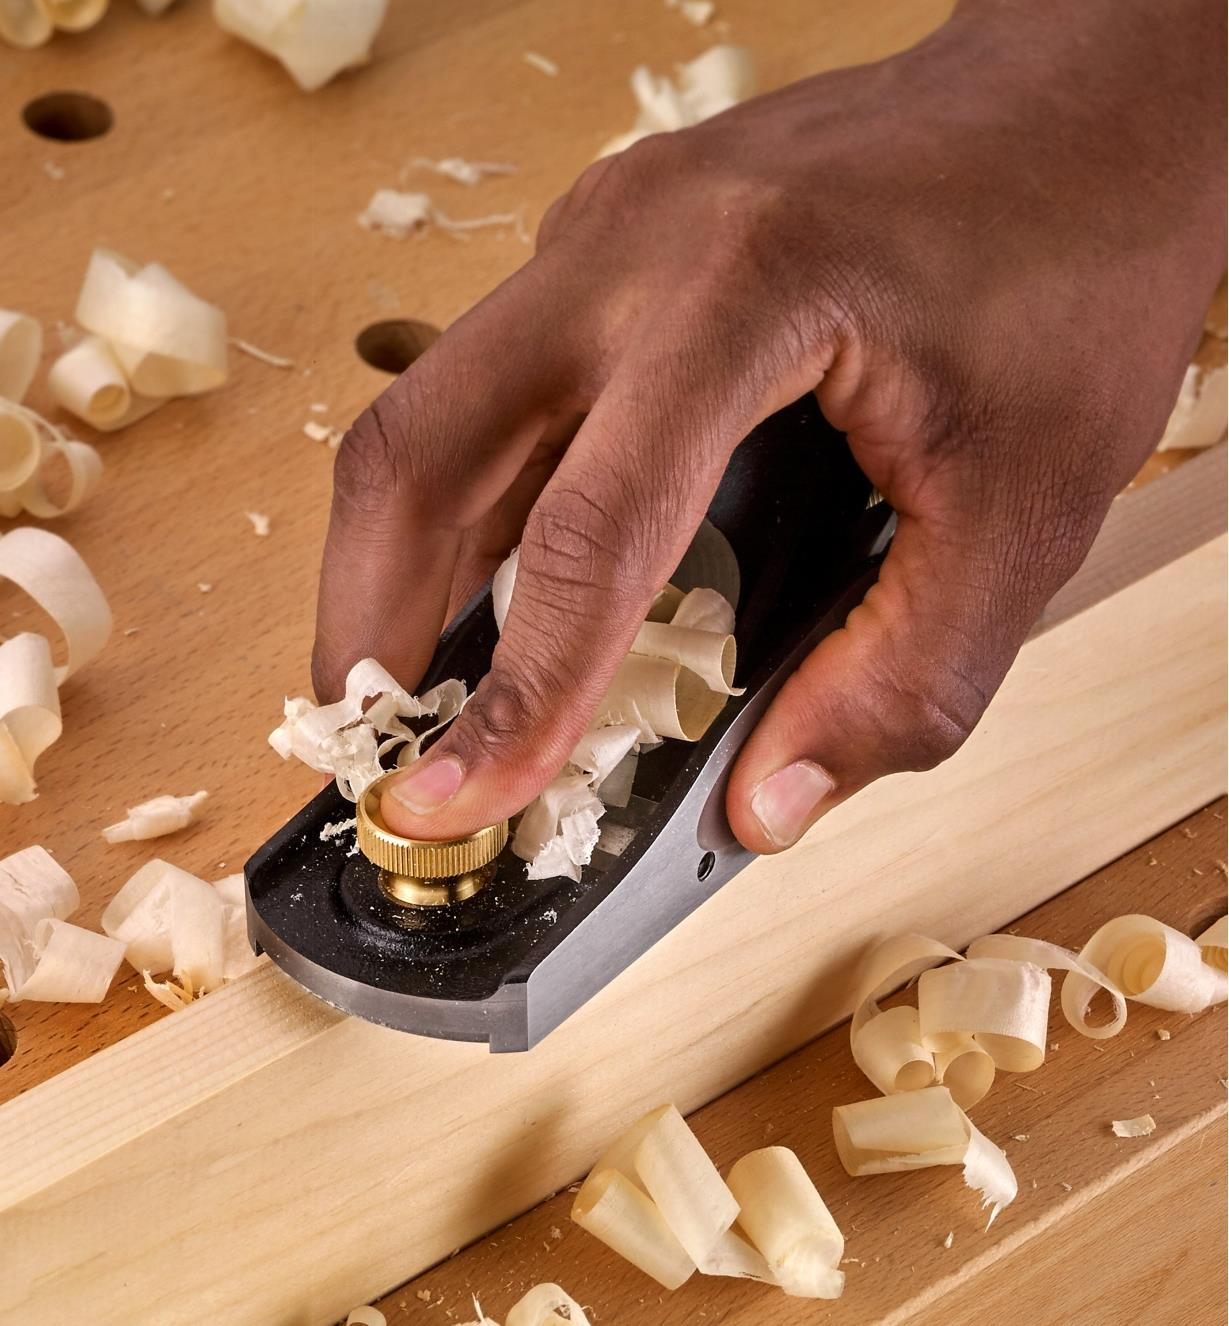 Using the Veritas Standard Block plane to plane a workpiece with one hand